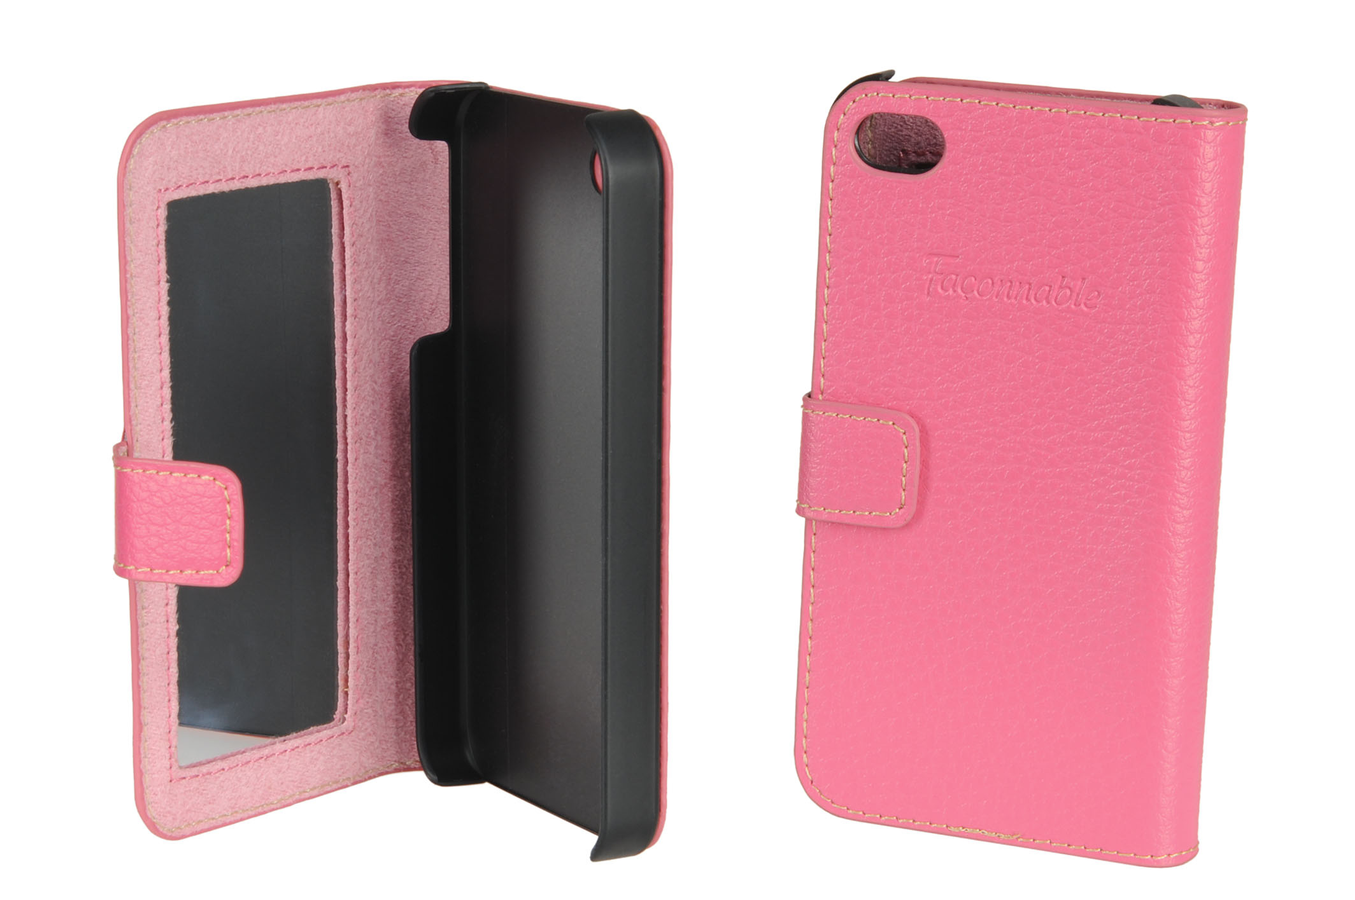 Housse pour iphone faconnable etui folio iphone 4 4s rose for Housse pour iphone